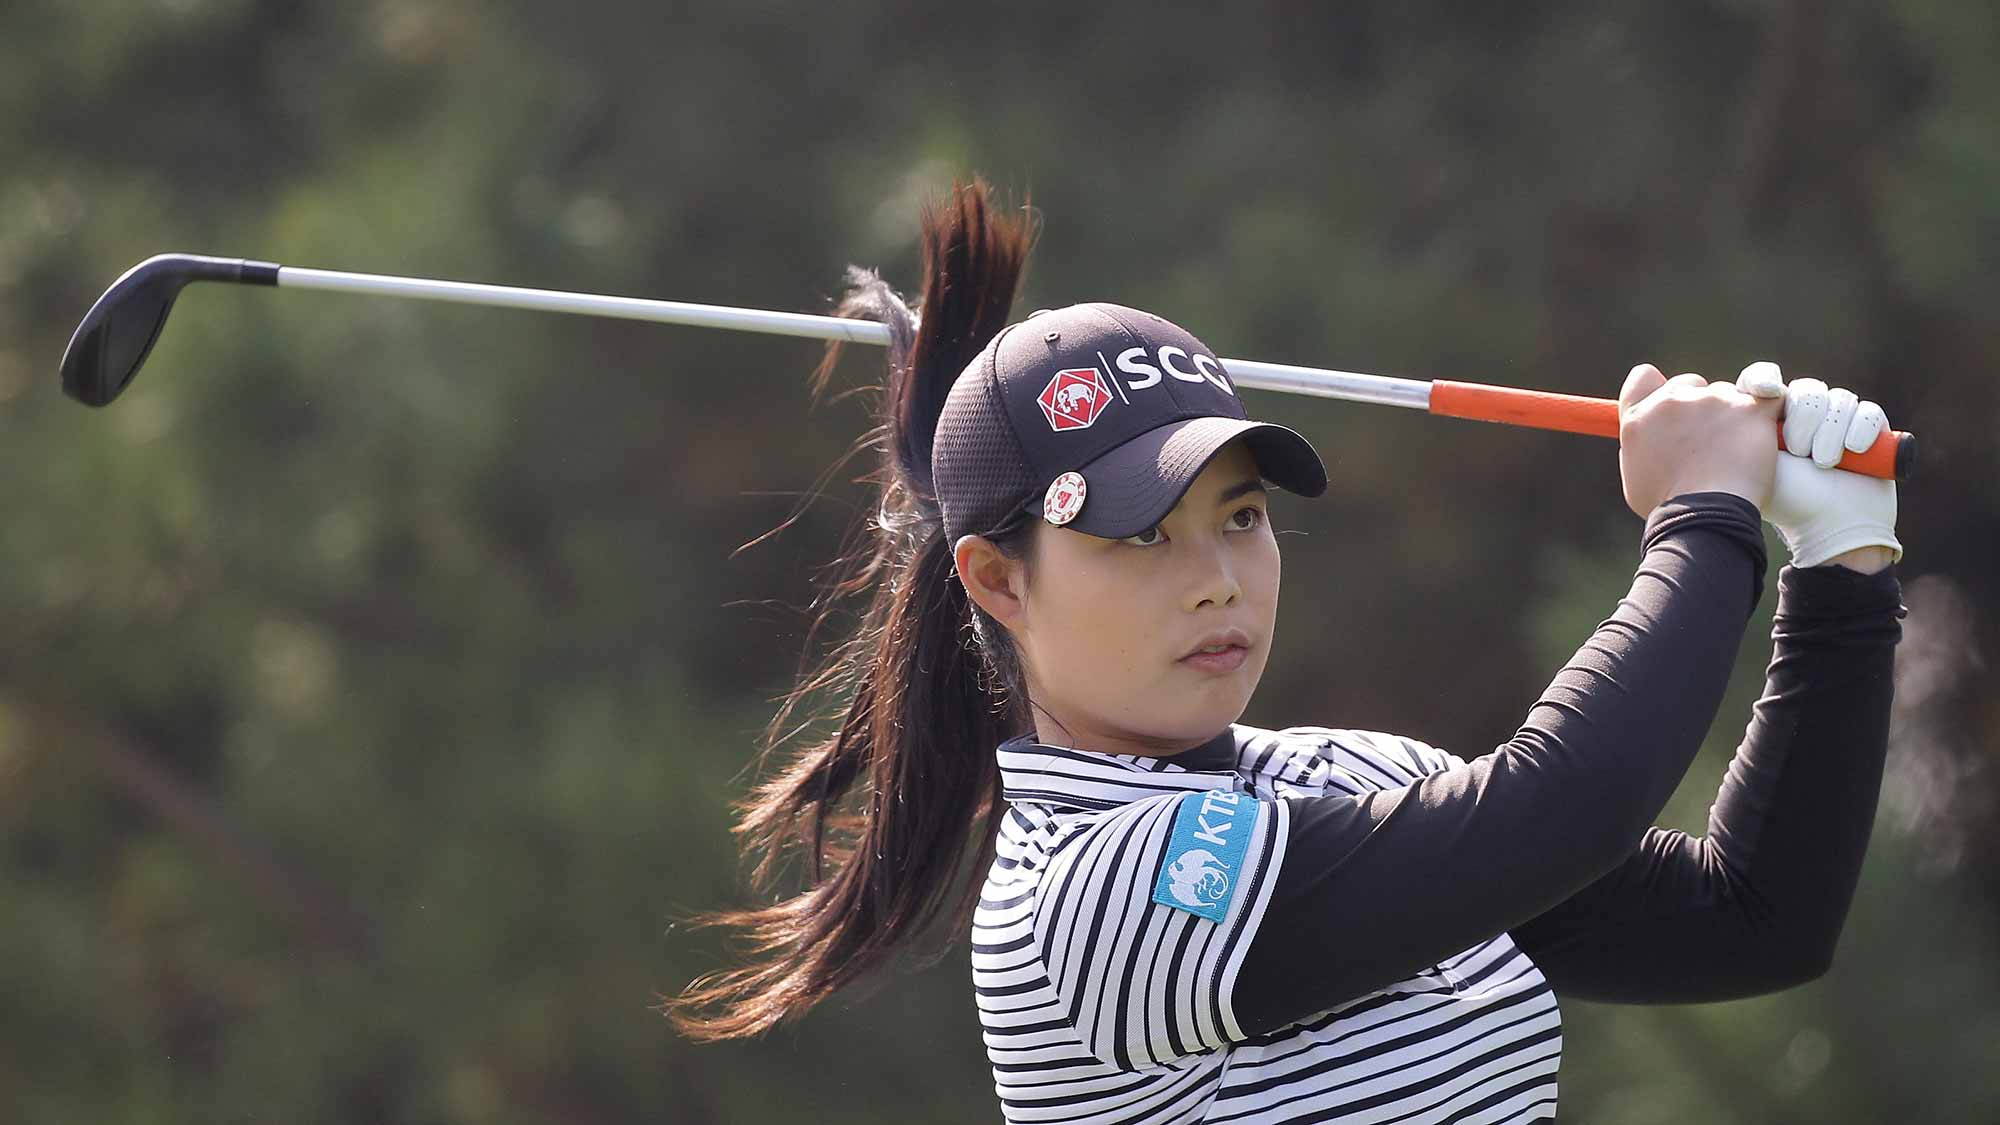 Moriya Jutanugarn of Thailand plays a tee shot on the 4th hole during round three of the LPGA KEB Hana Bank